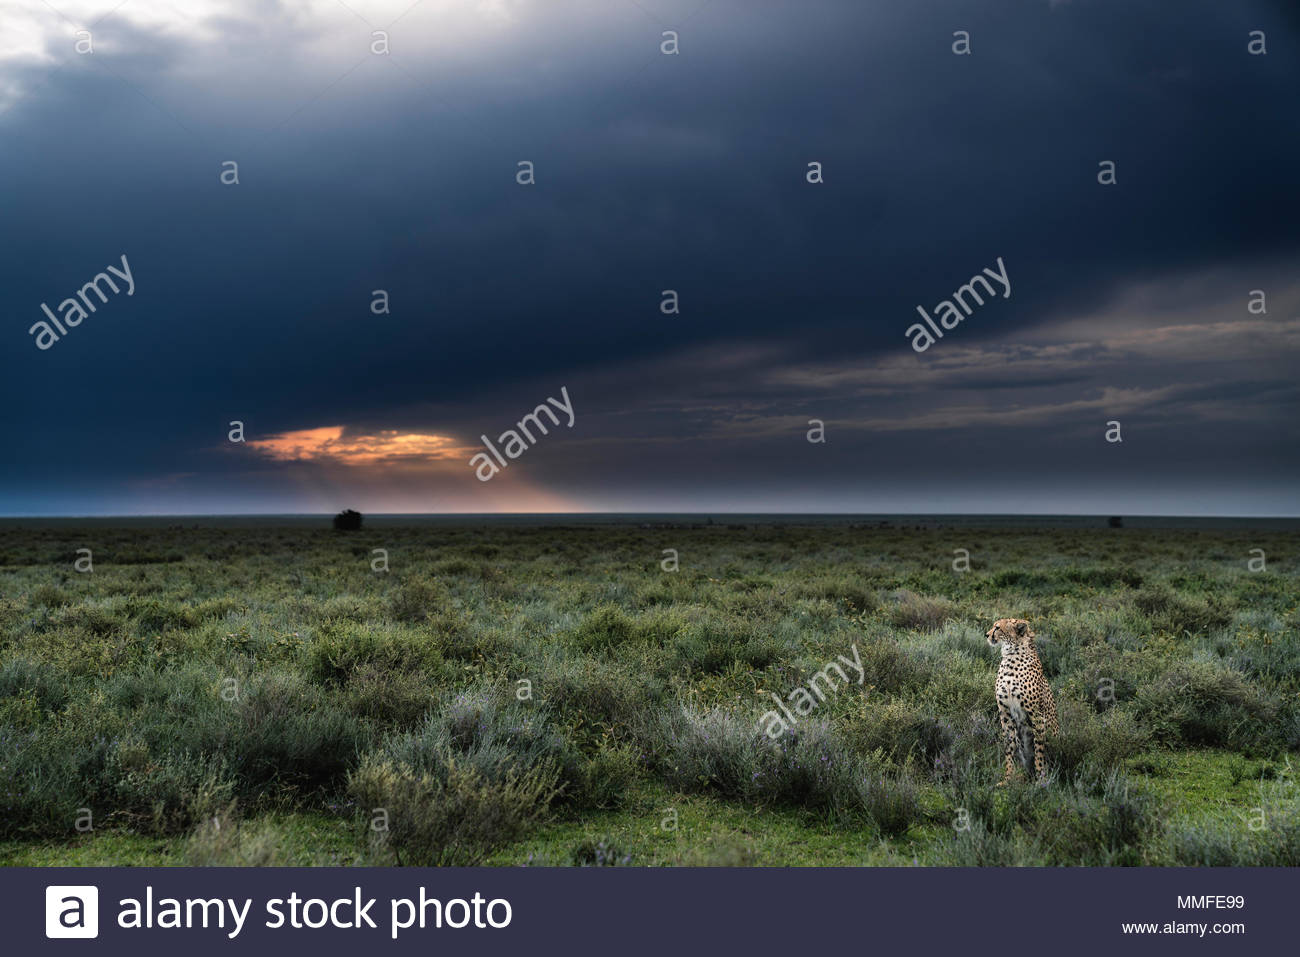 A male cheetah, Acinonyx jubatus, at sunset in Serengeti National Park. - Stock Image